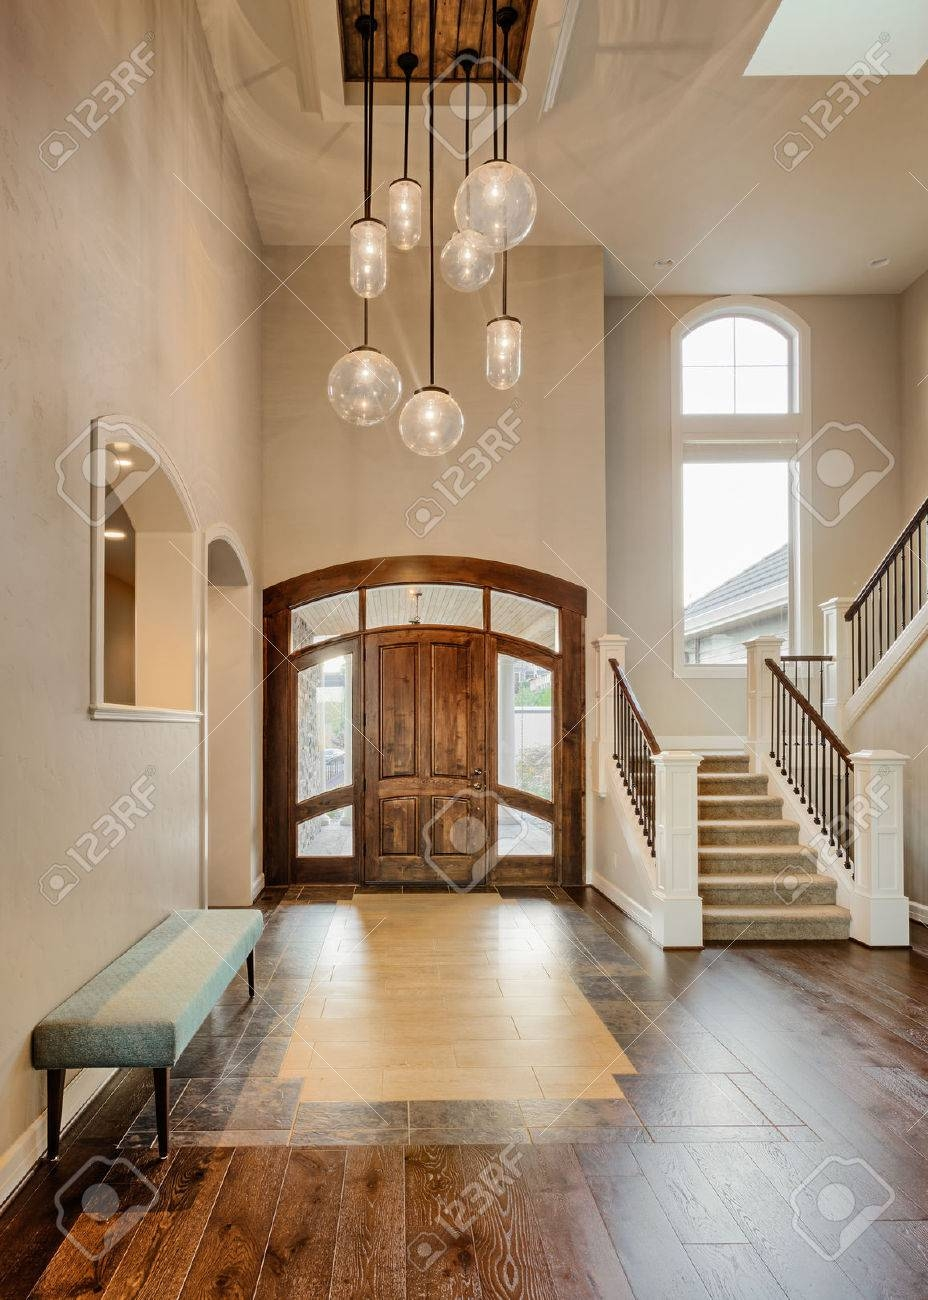 Beautiful Foyer In Home; Entryway With Stairs, Pendant Lights throughout Vaulted Ceiling Pendant Lighting (Image 1 of 15)